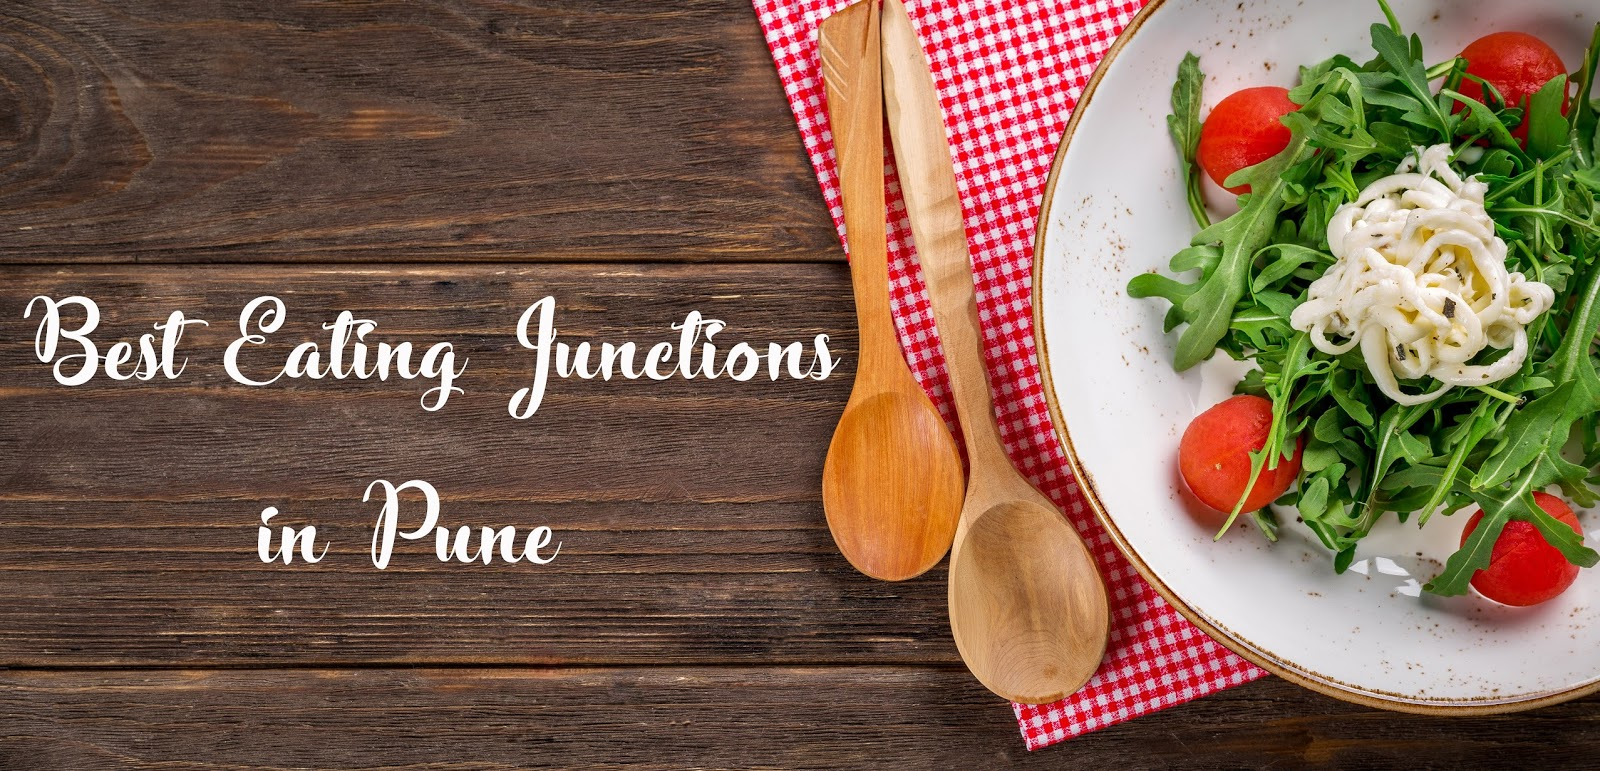 Best eating junctions in Pune - for those in need of a break from curry!